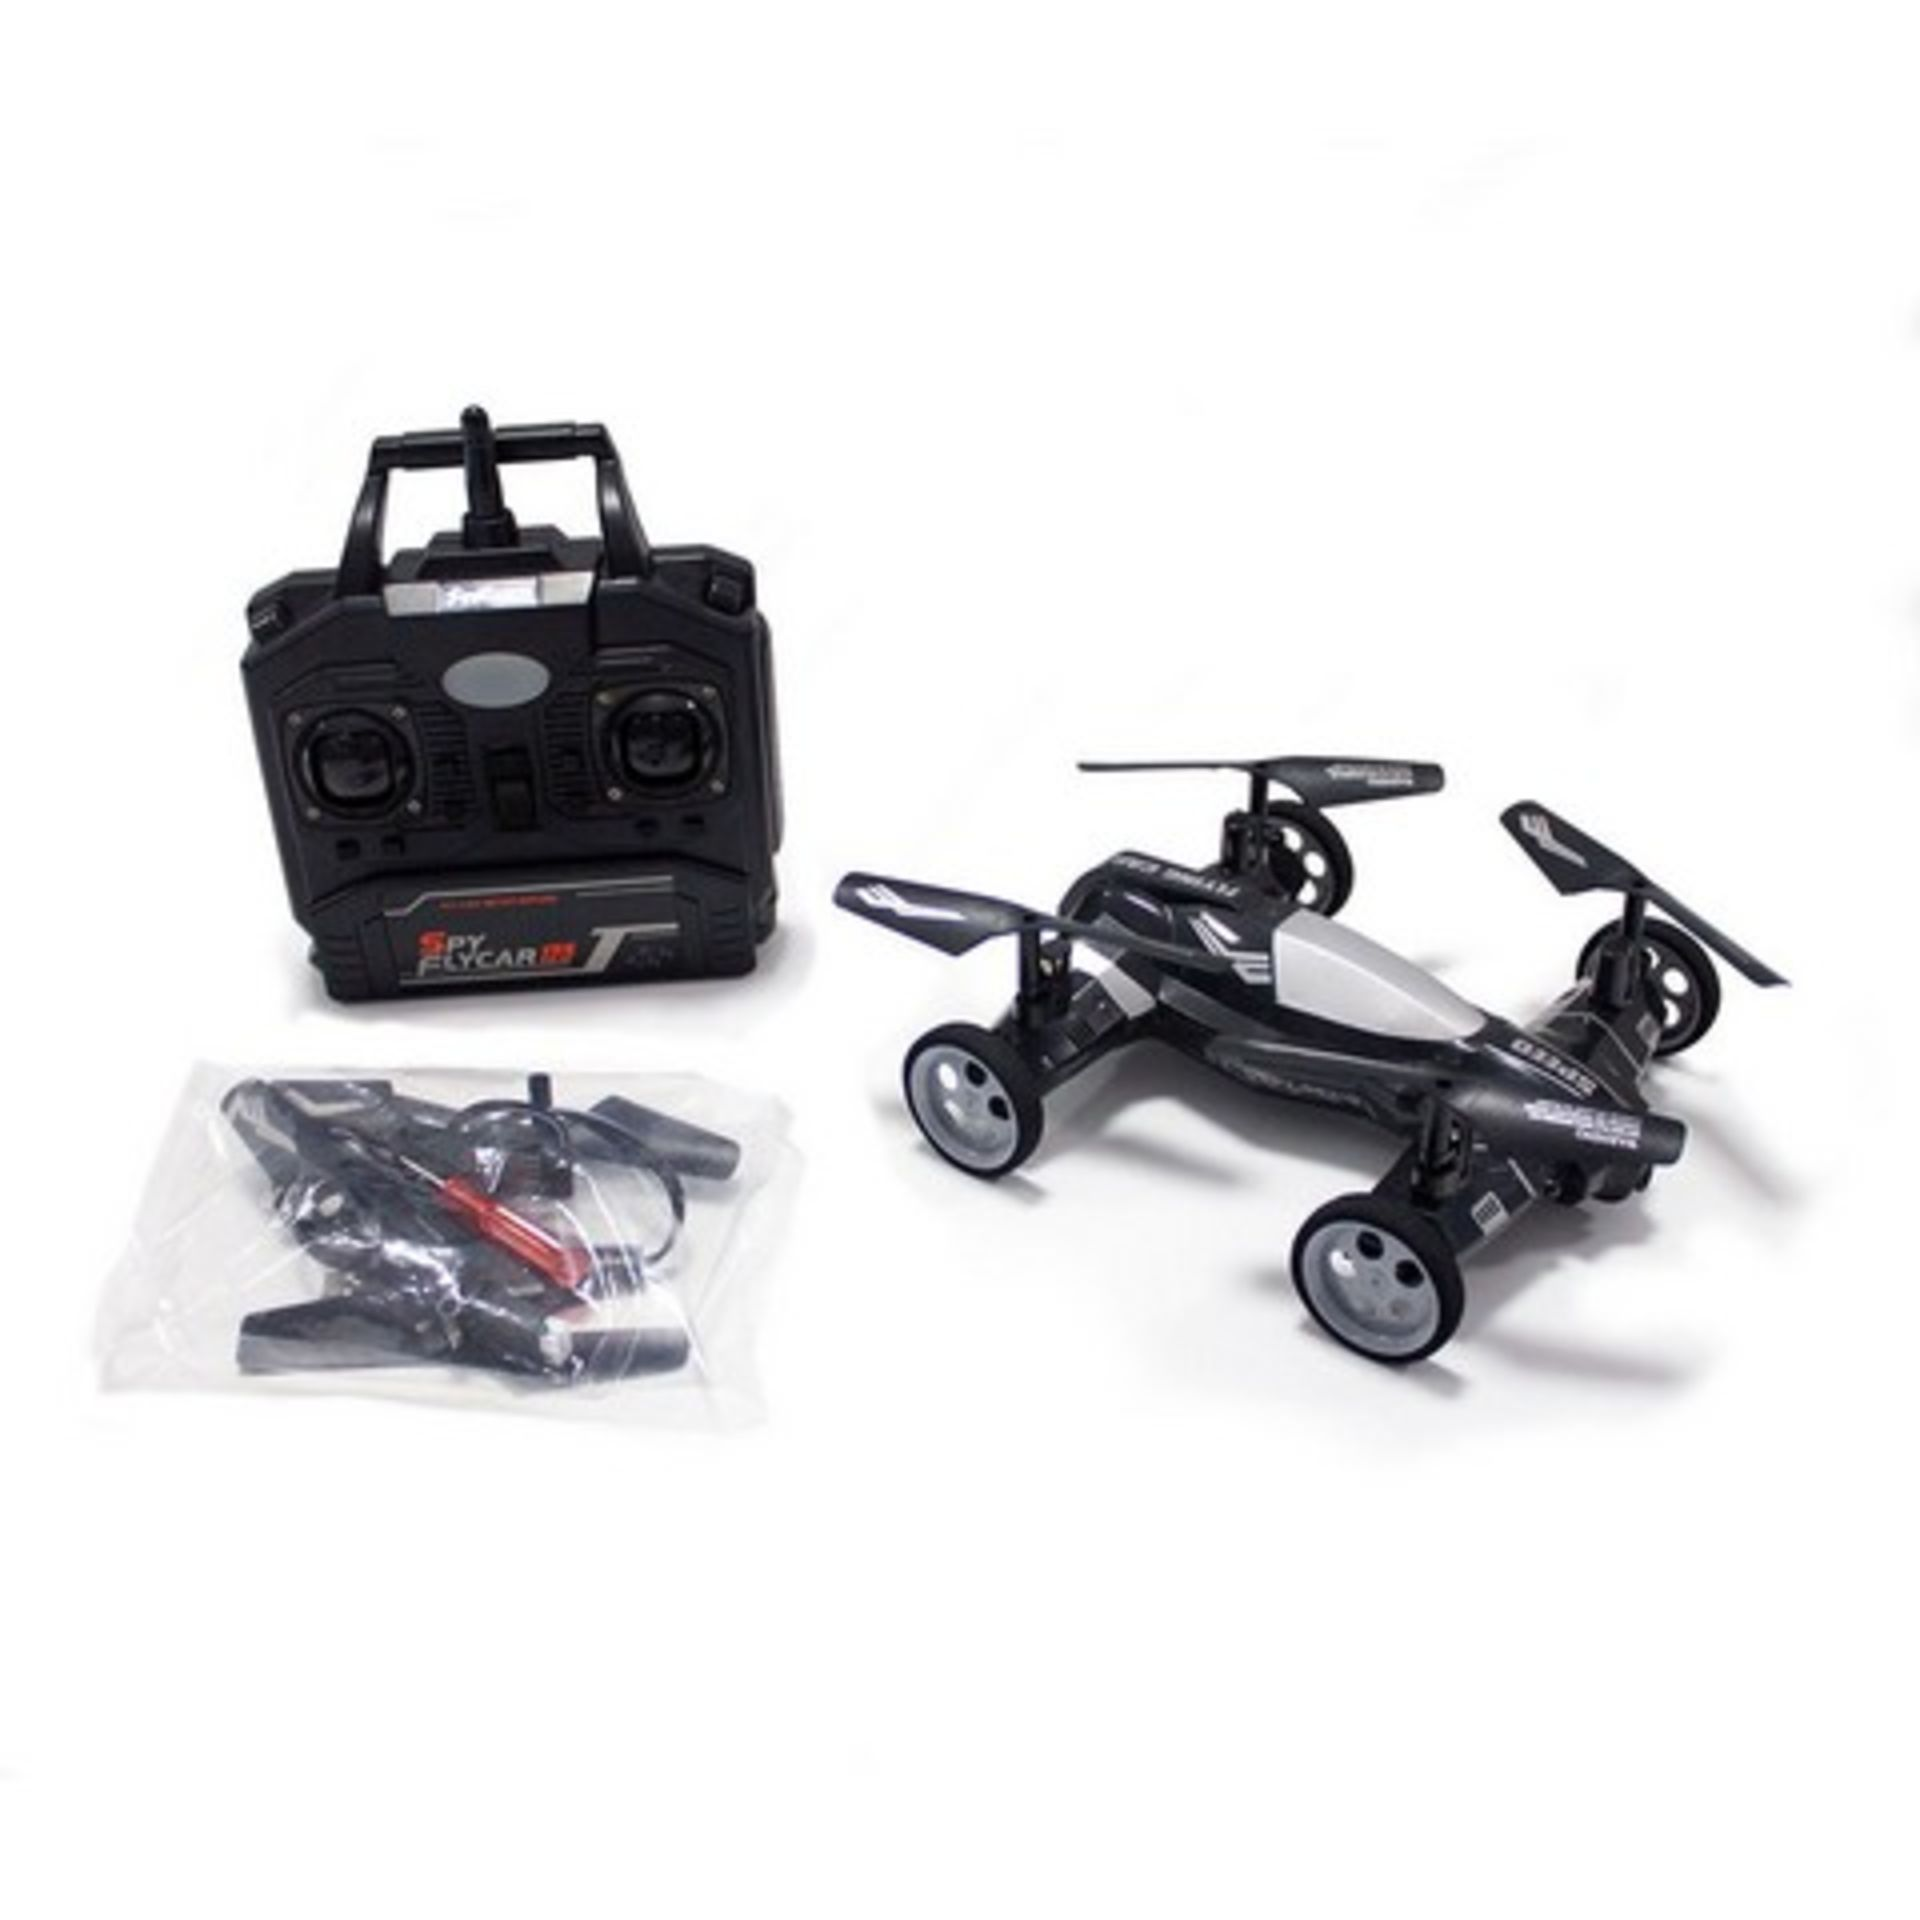 Lot 51938 - V Brand New Radio Control Quad-Copter Orbit Moon Buggy - 720P HD Camera - 4GB Micro SD Card Included